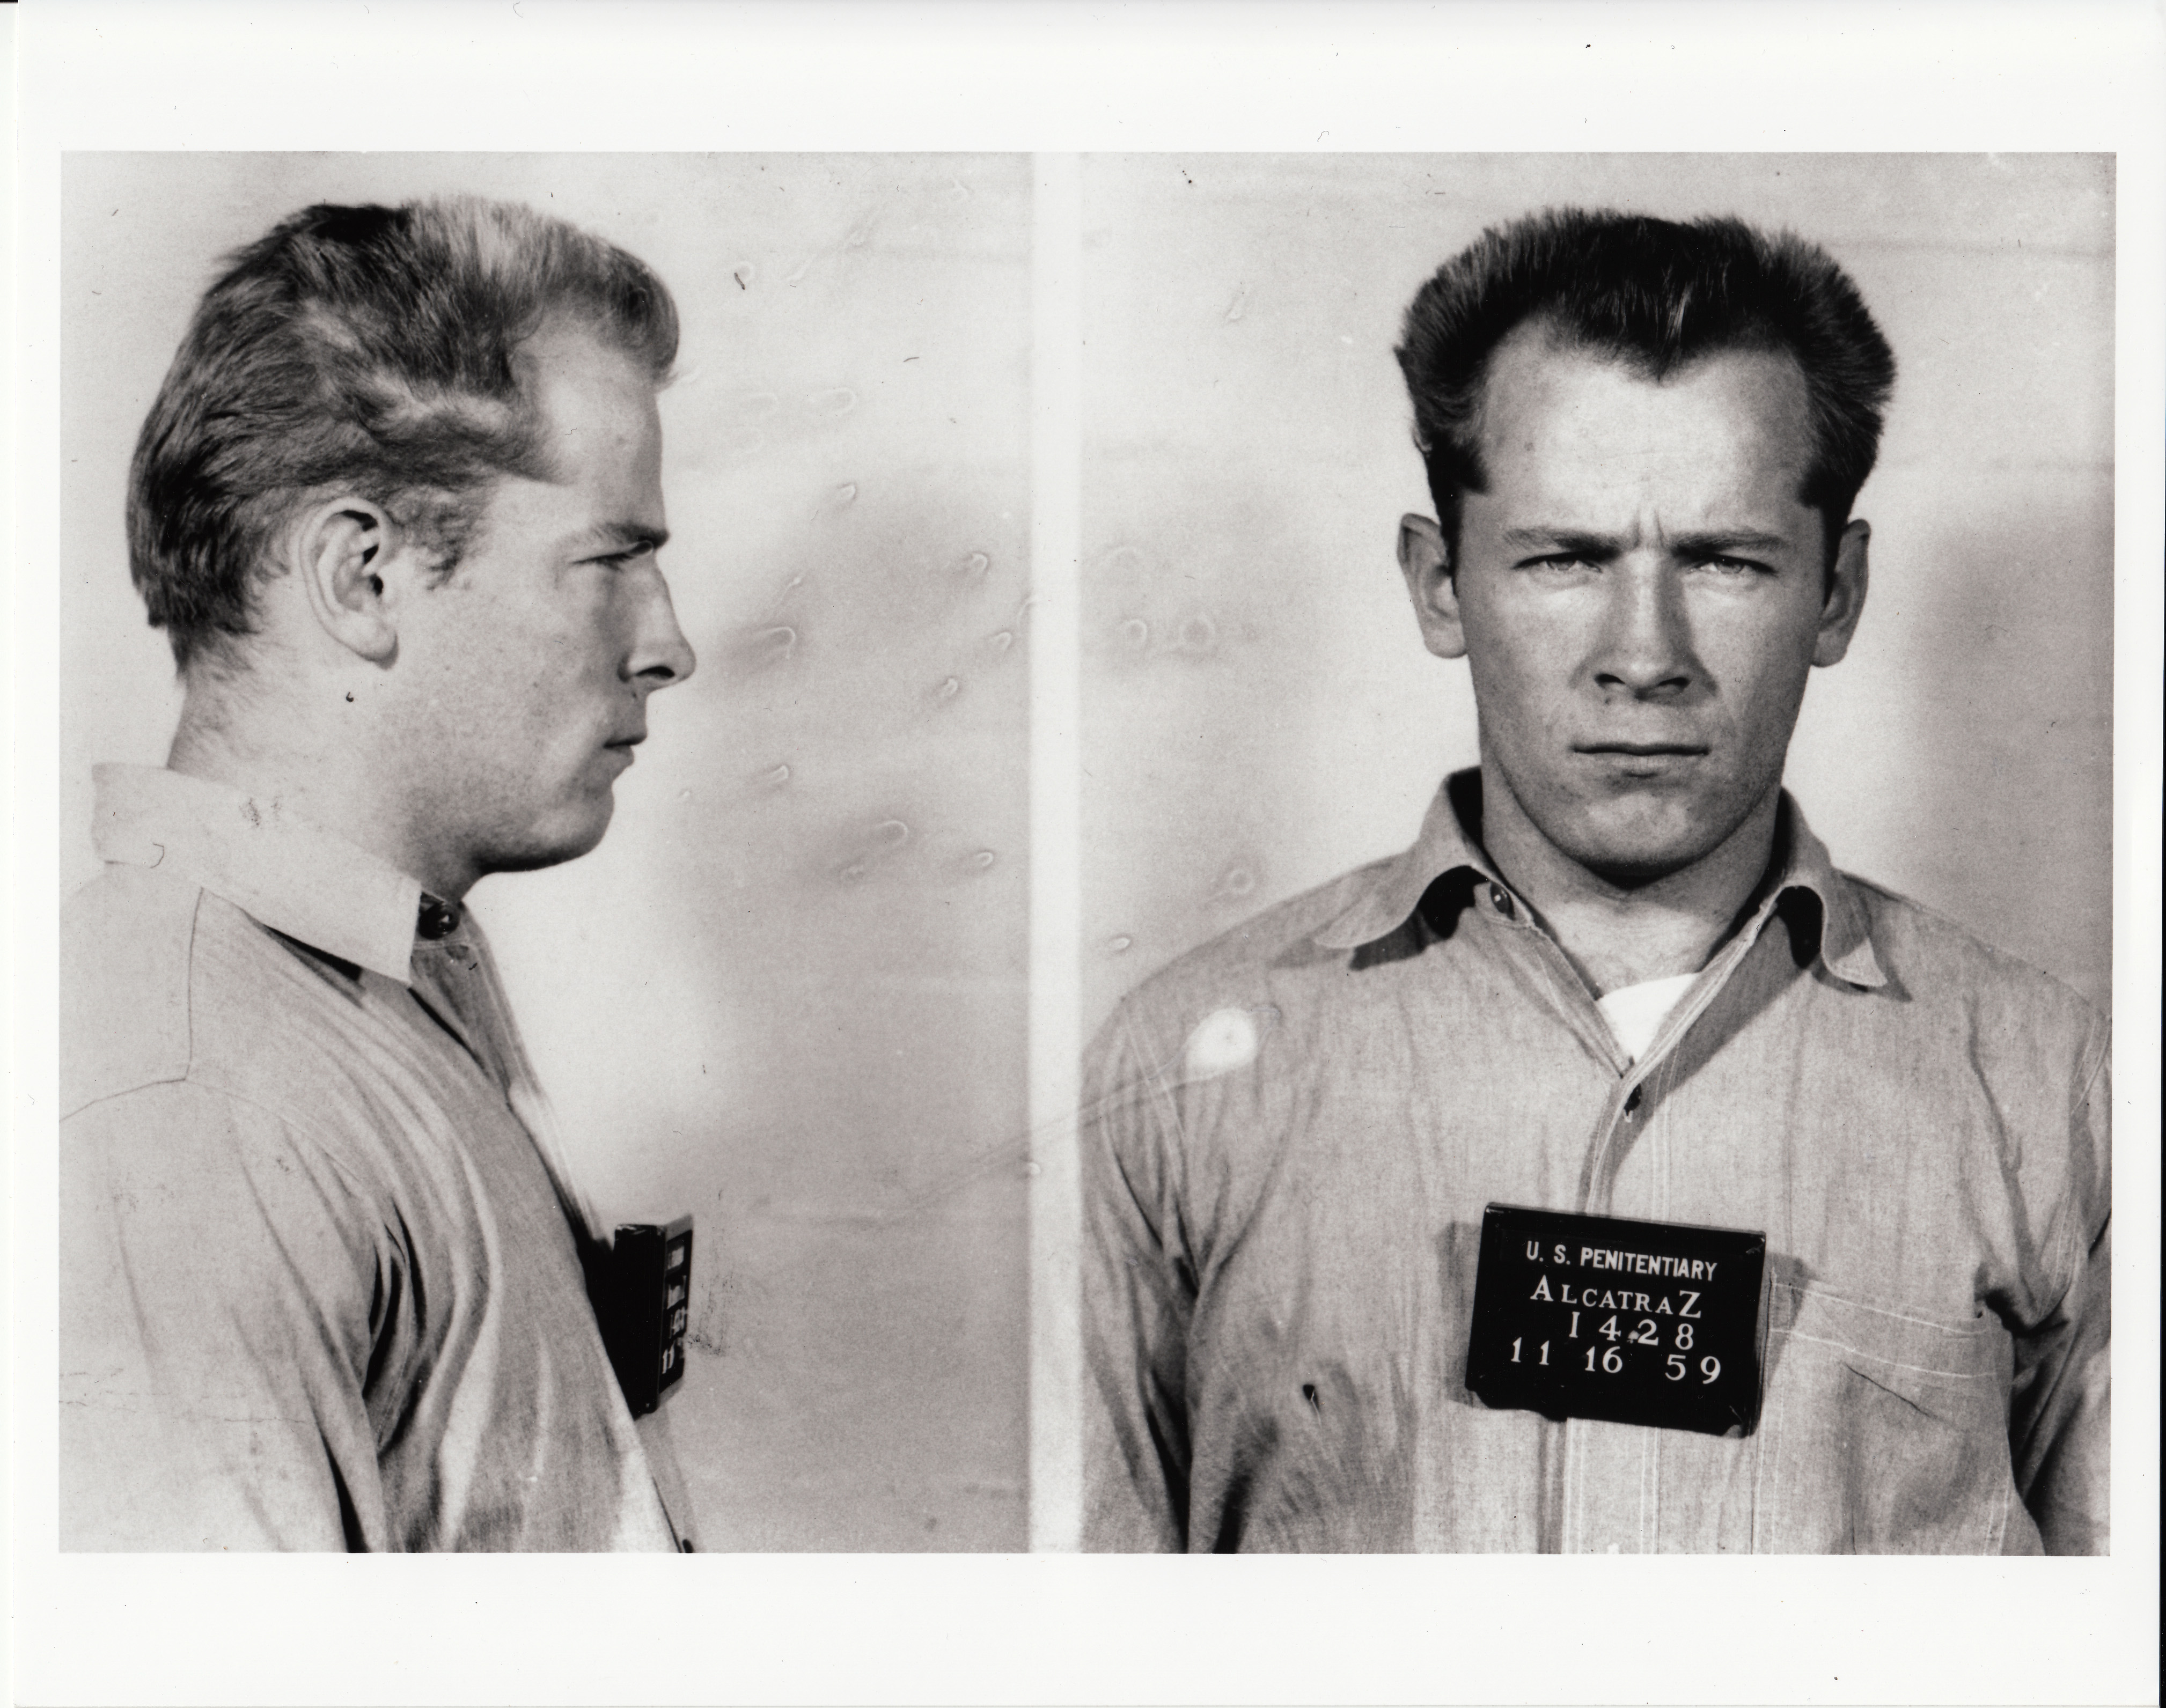 Mugshot of James  Whitey  Bulger. Alcatraz Federal Penitentiary.